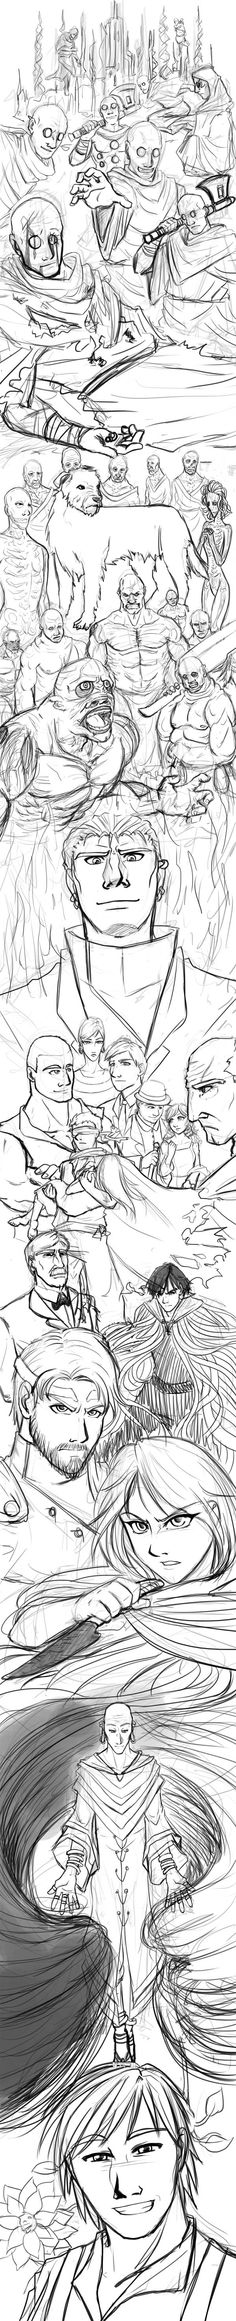 HOLY CROW!!!  Amazing...  my favorite Mistborn fan art by far. 'Mistborn Tribute in progress by ~axt234 on deviantART'